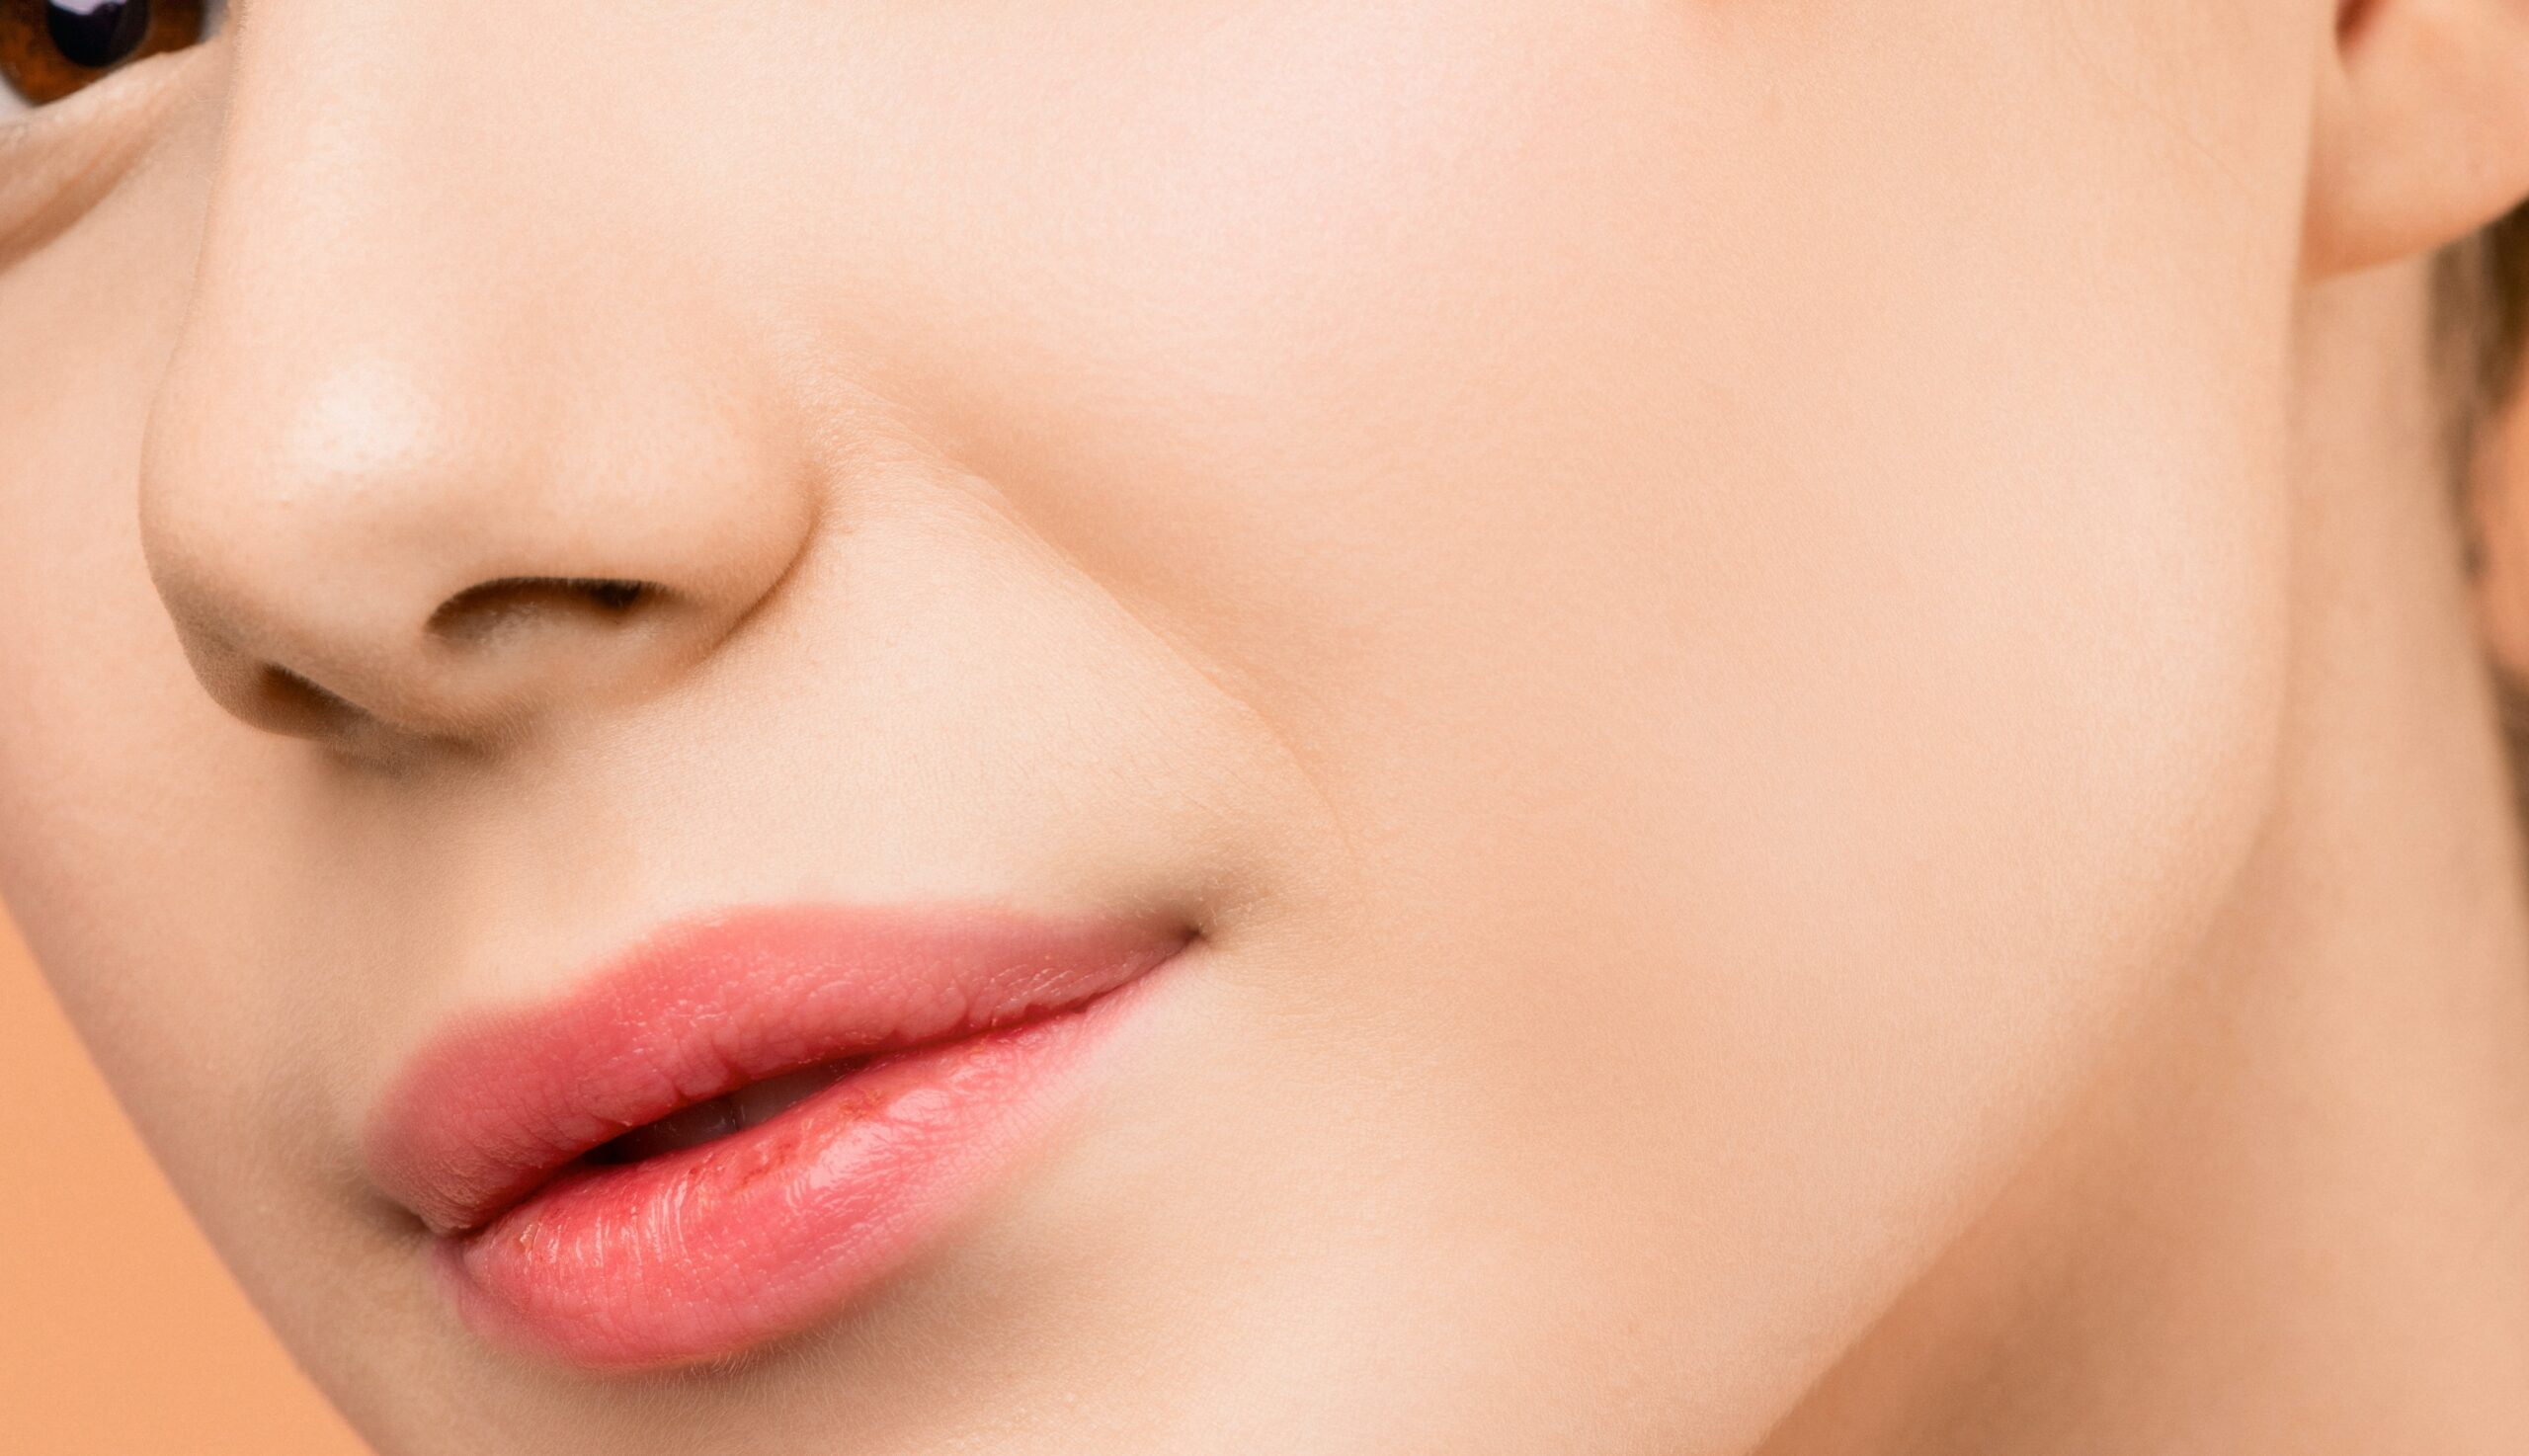 What Are Some Reasons To Get a Rhinoplasty